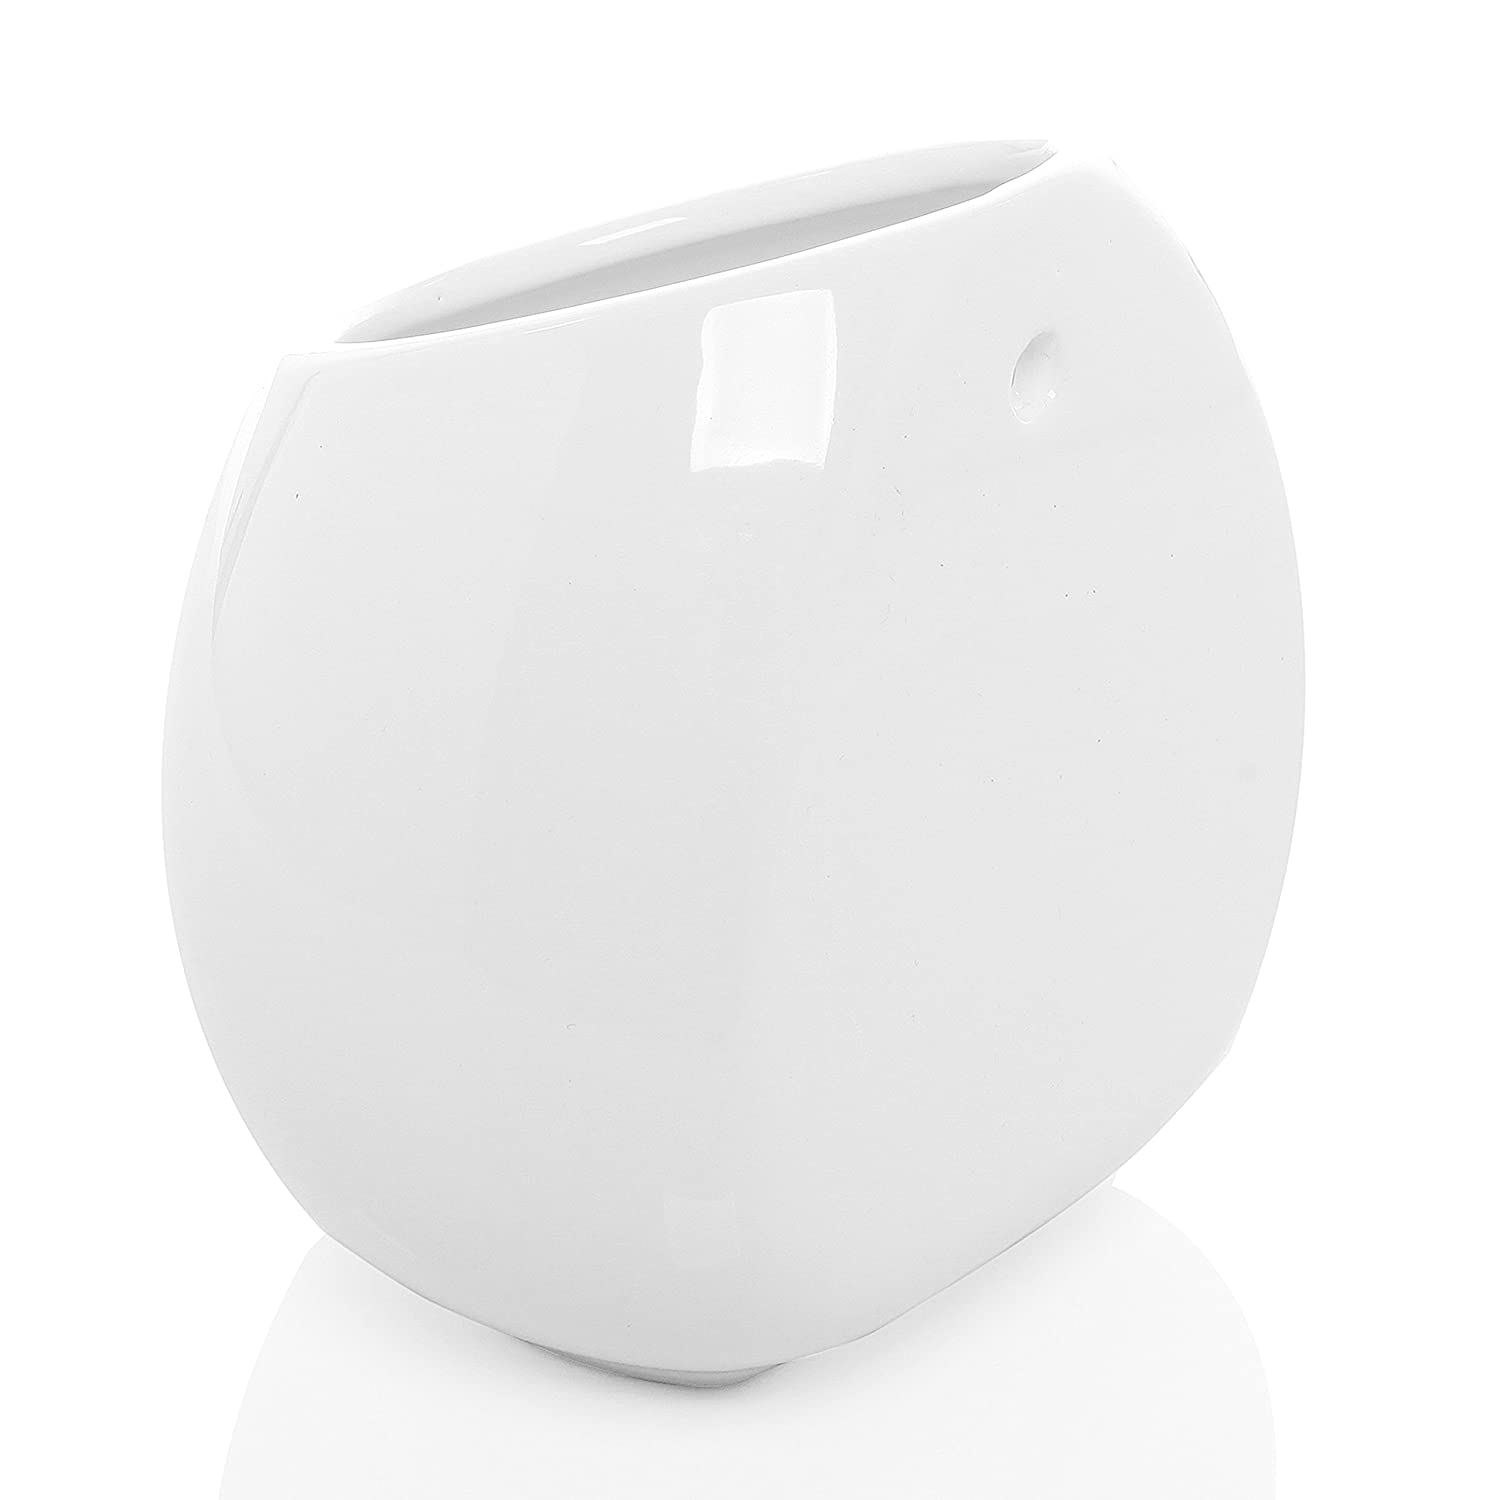 Amazoncom 6 Inch White Ceramic Wall Mounted, Hanging Or Freestanding